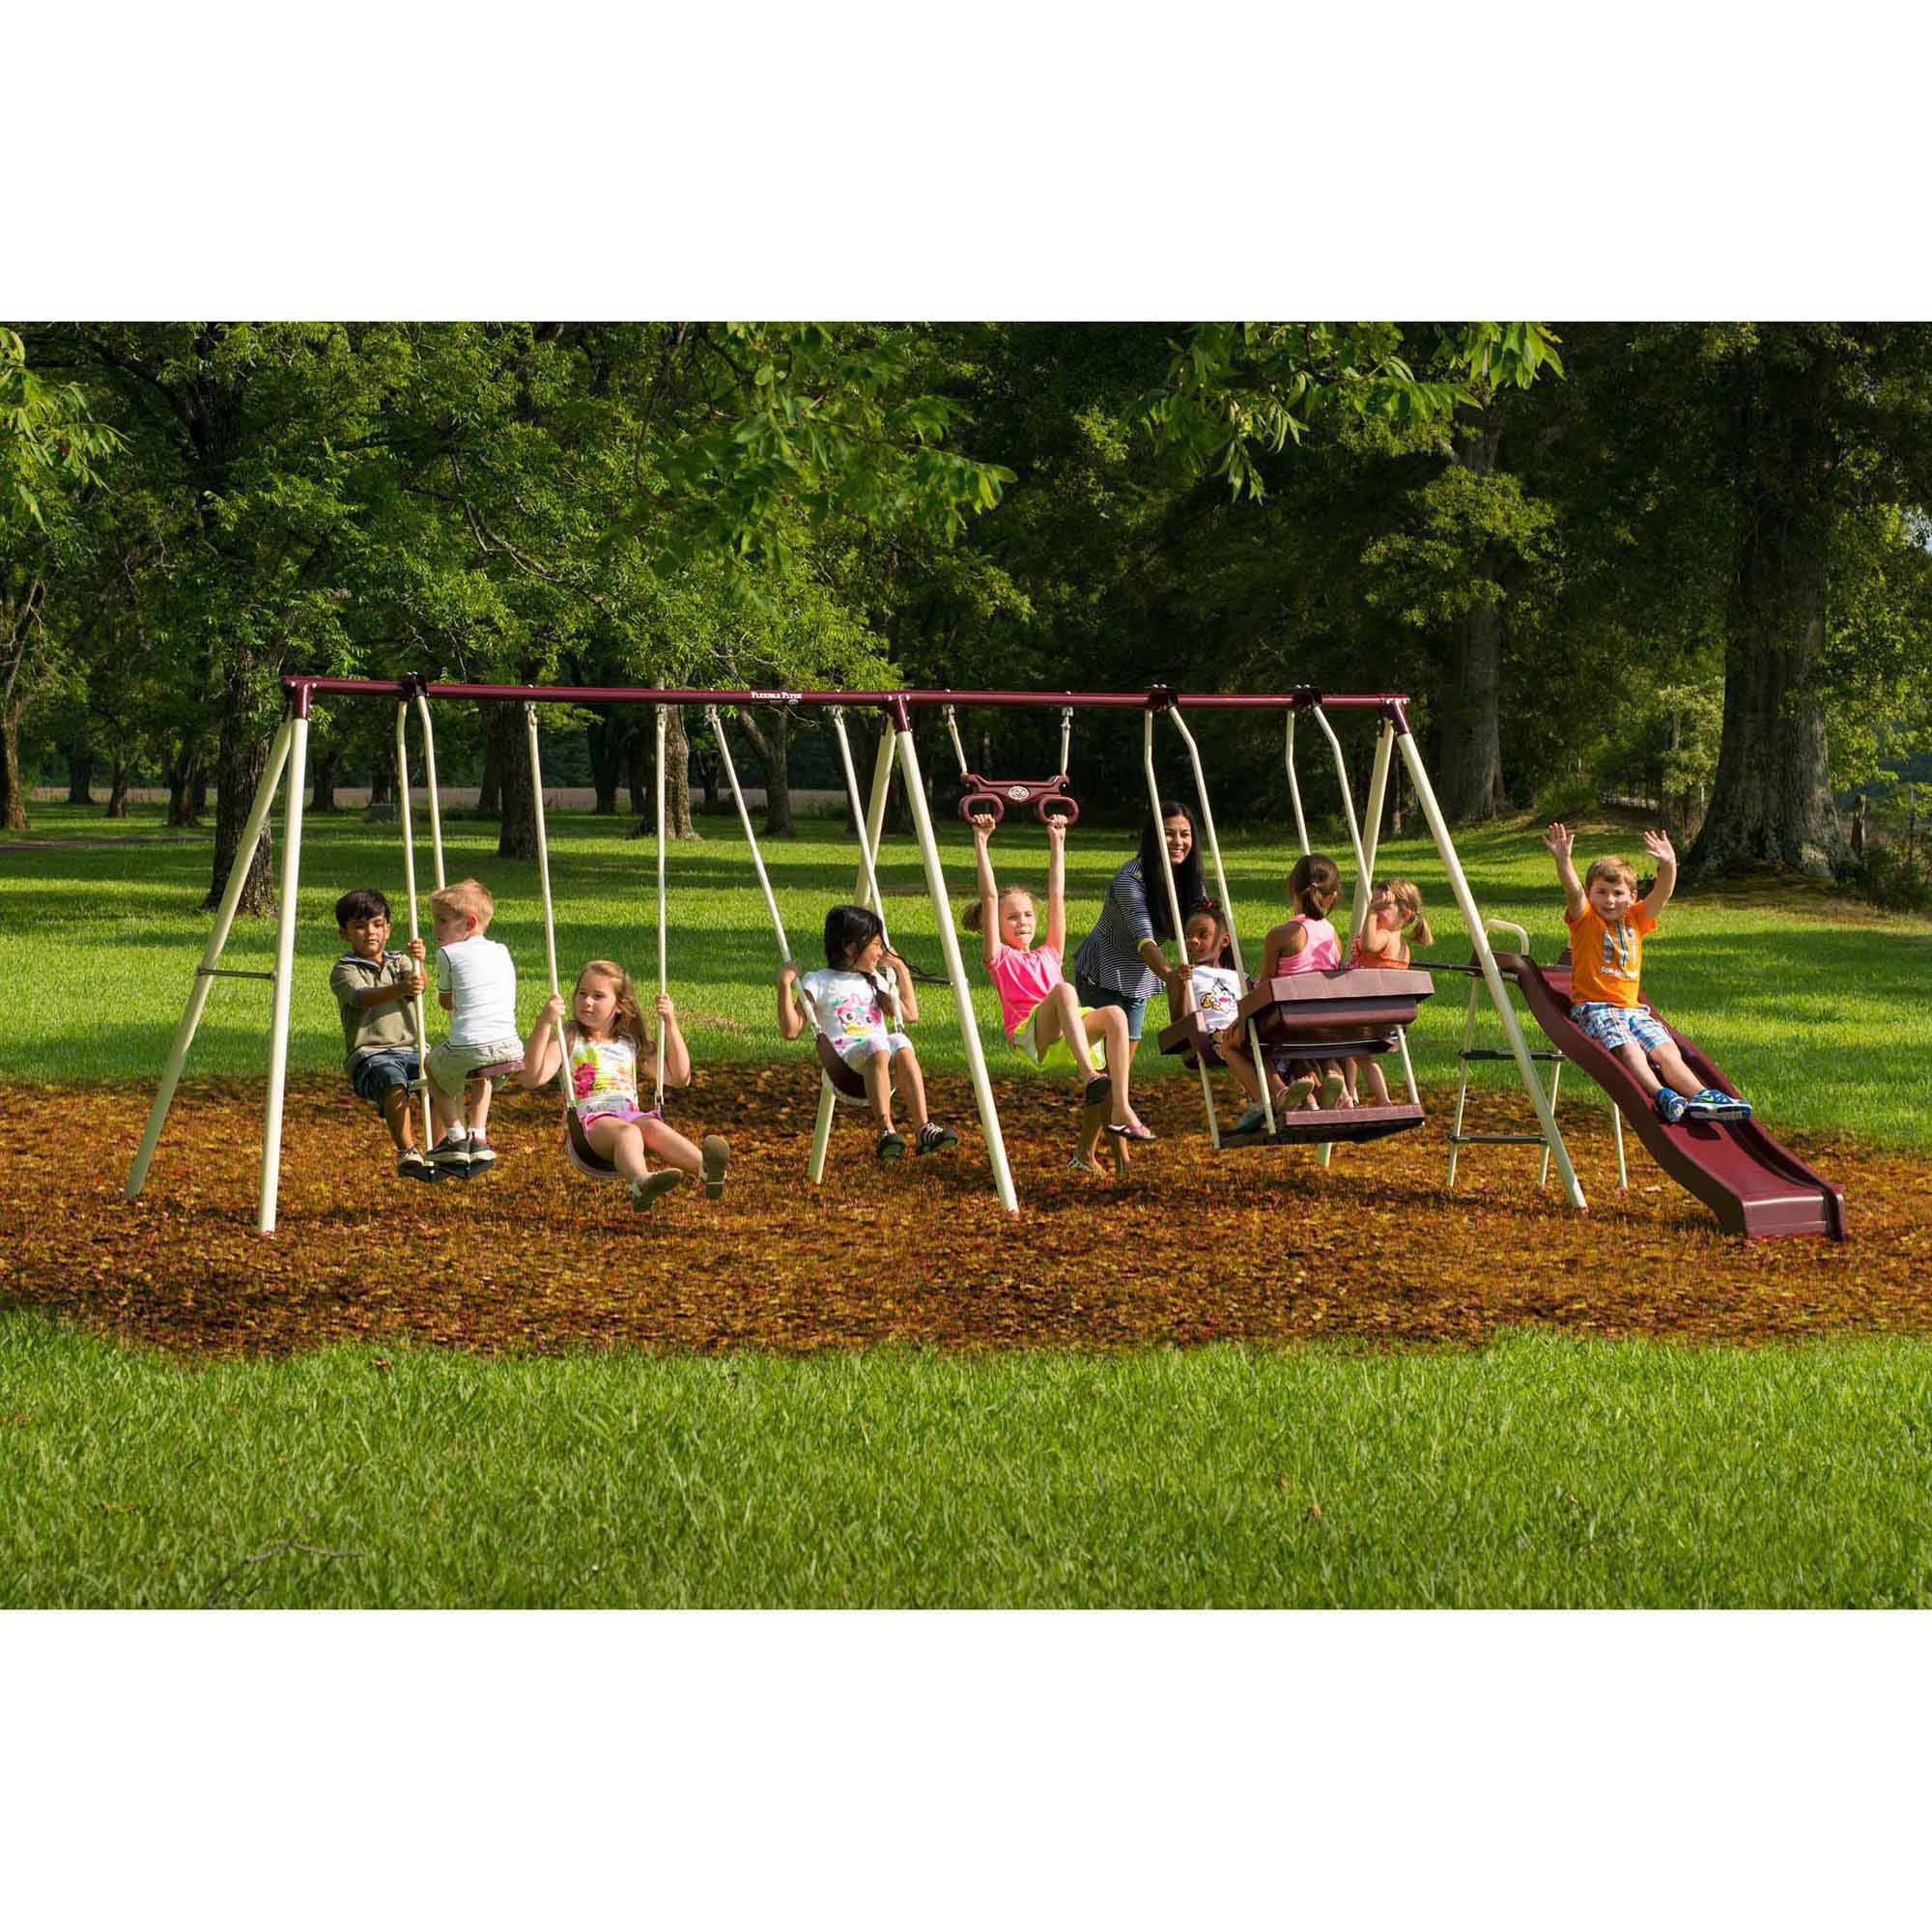 Flexible Flyer Play Park Metal Swing Set